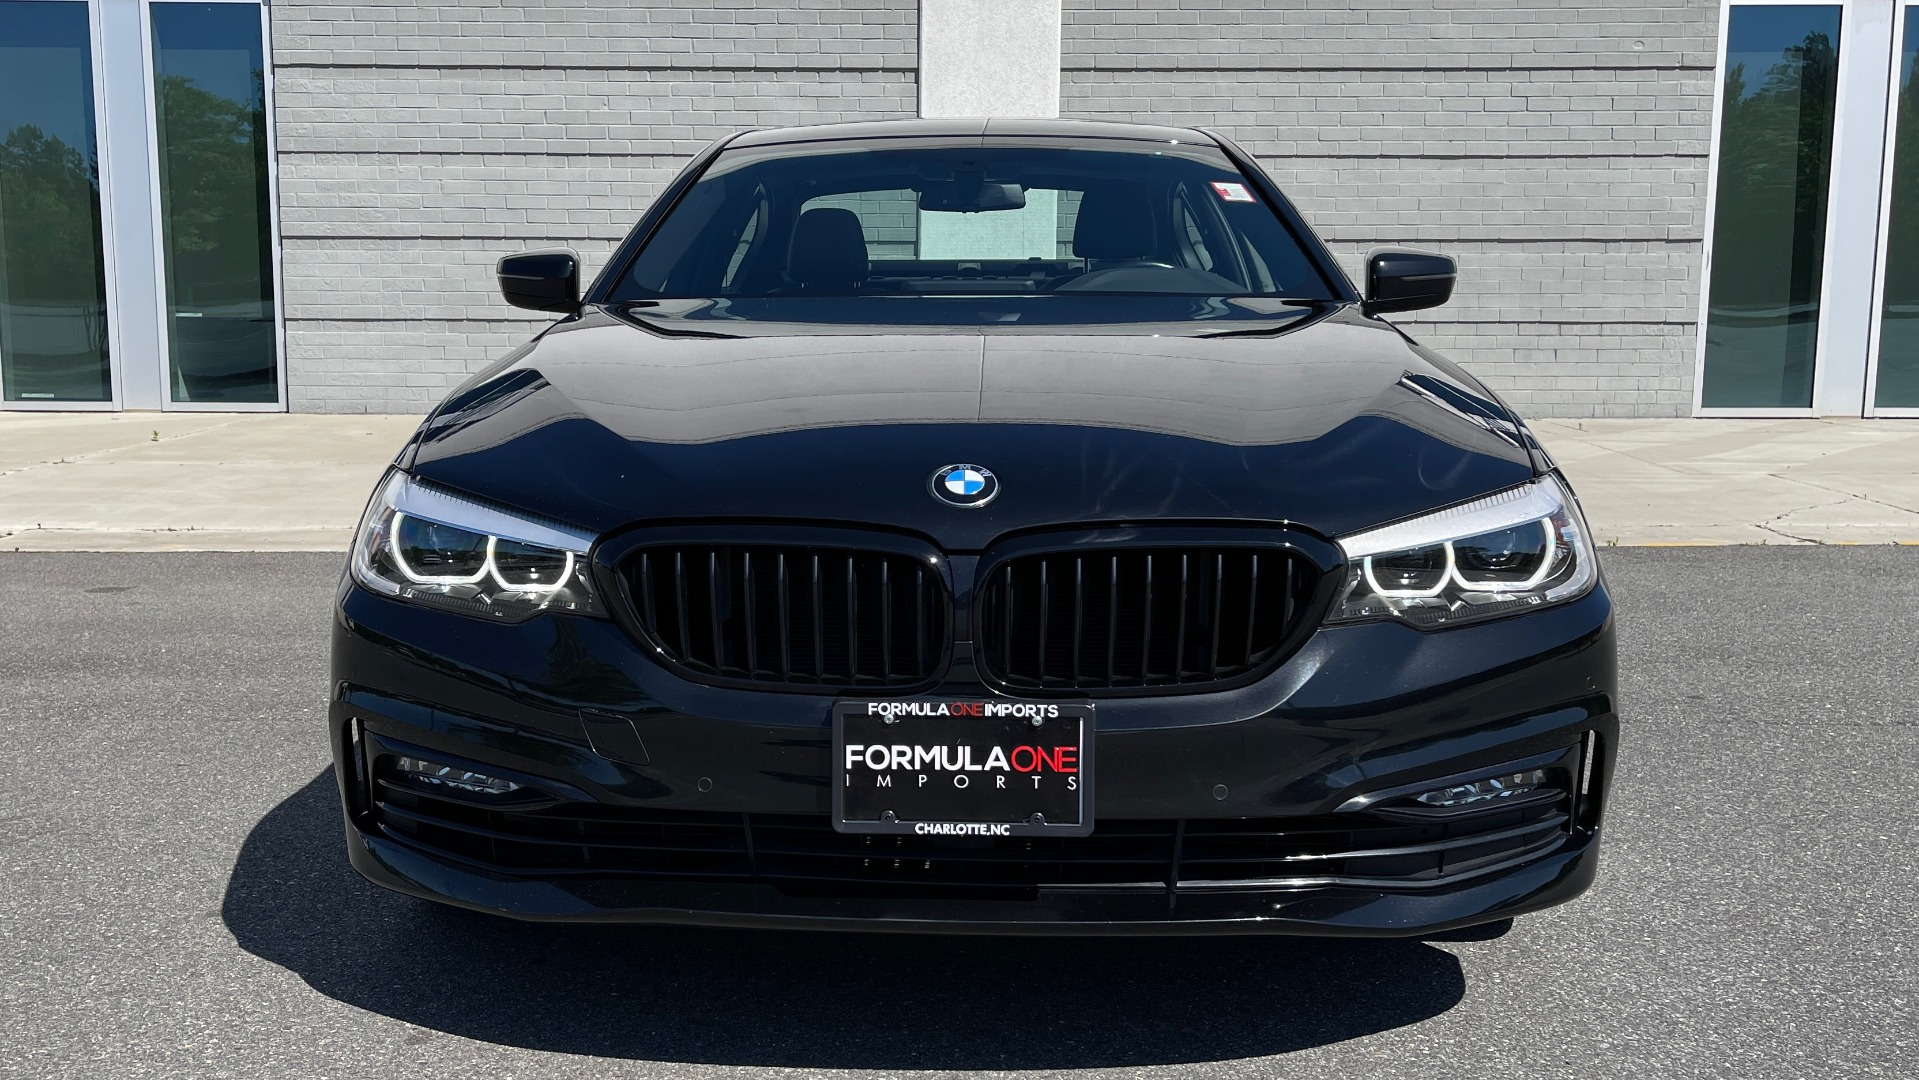 Used 2018 BMW 5 SERIES 540I XDRIVE PREMIUM / NAV / PARK ASST / WIRELESS CHARGING H/K SND for sale $38,395 at Formula Imports in Charlotte NC 28227 13